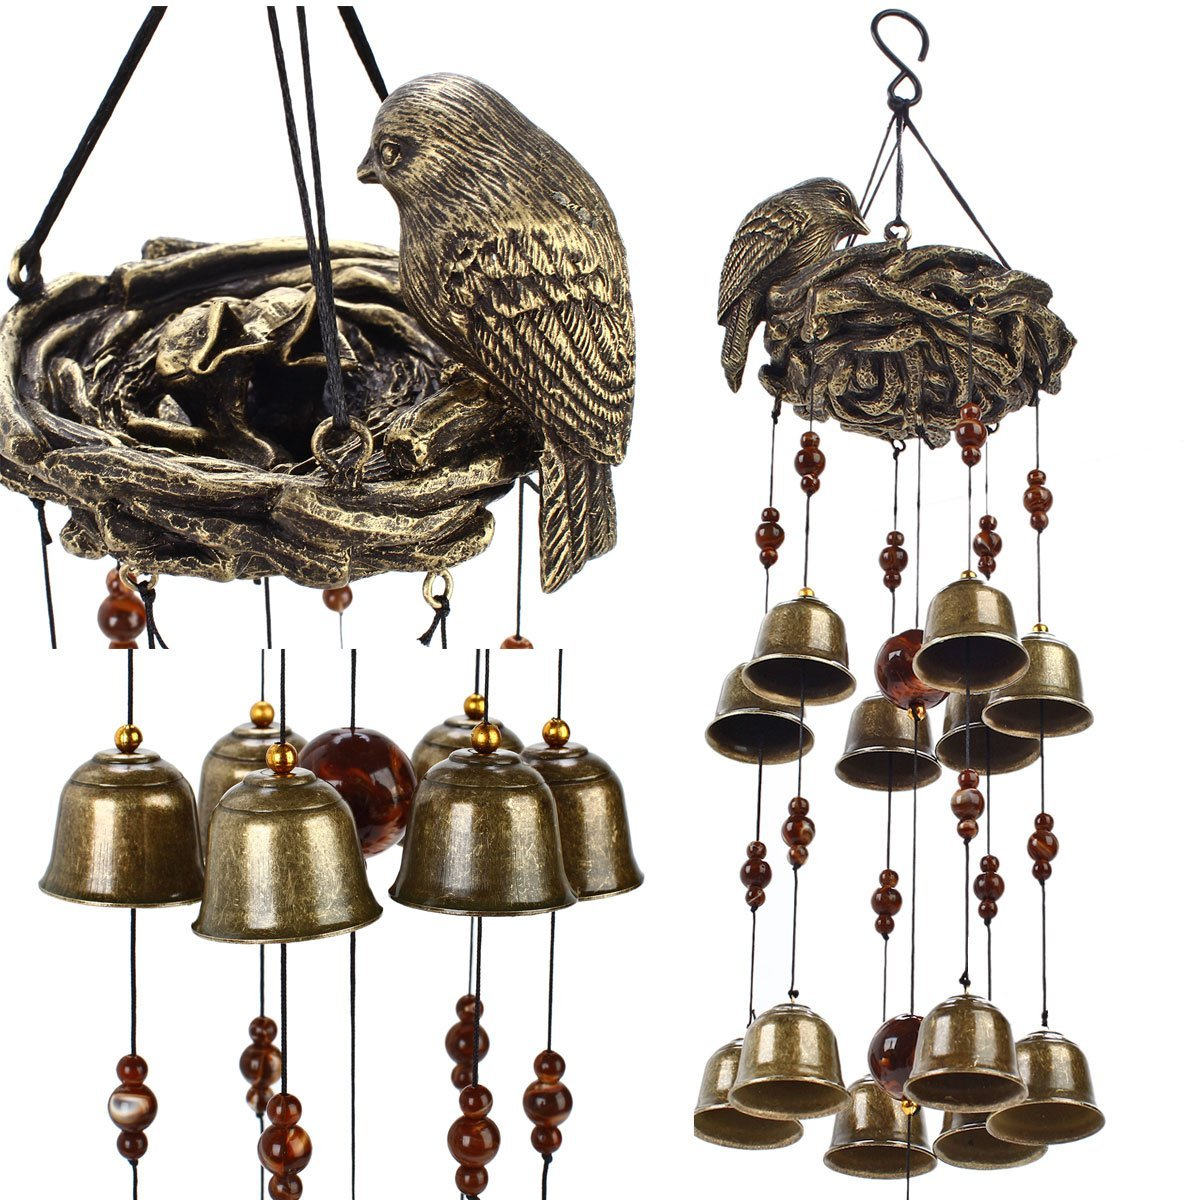 Ylyycc® New birds and nest wind chime 12pieces bells wind chime bronze color